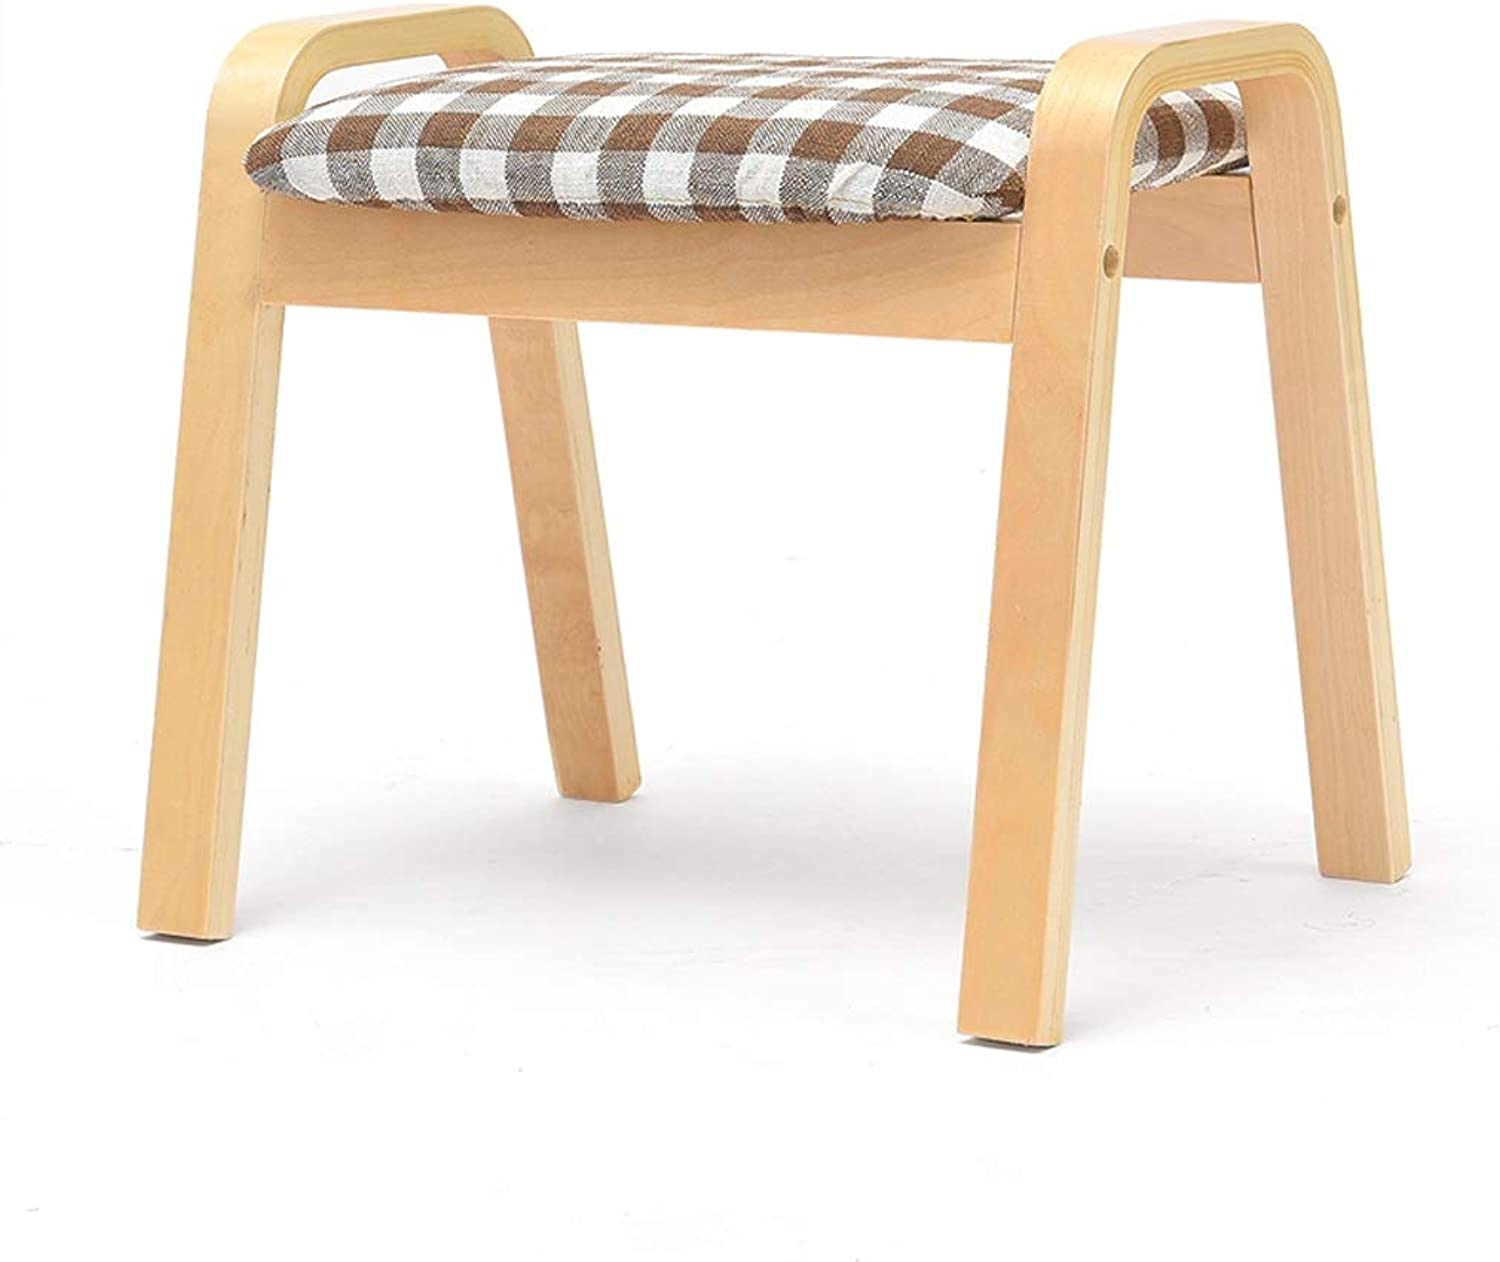 CQ Lattice Home Stool Creative Stool Living Room Adult Solid Wood Bench Fabric Stool Sofa Change shoes Bench